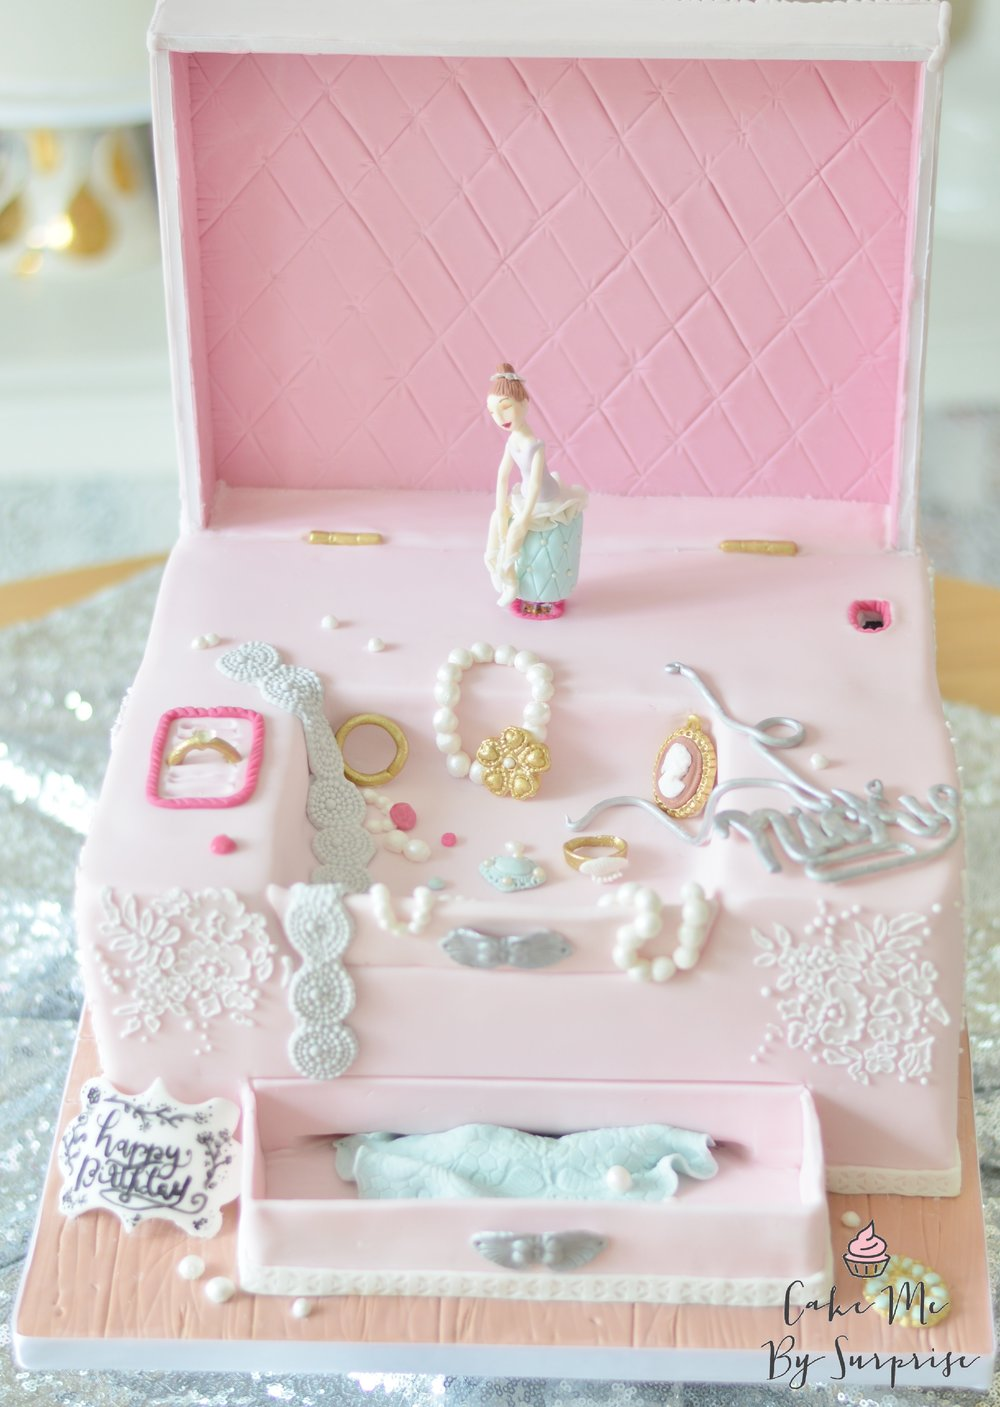 Jewellery box cake with ballerina